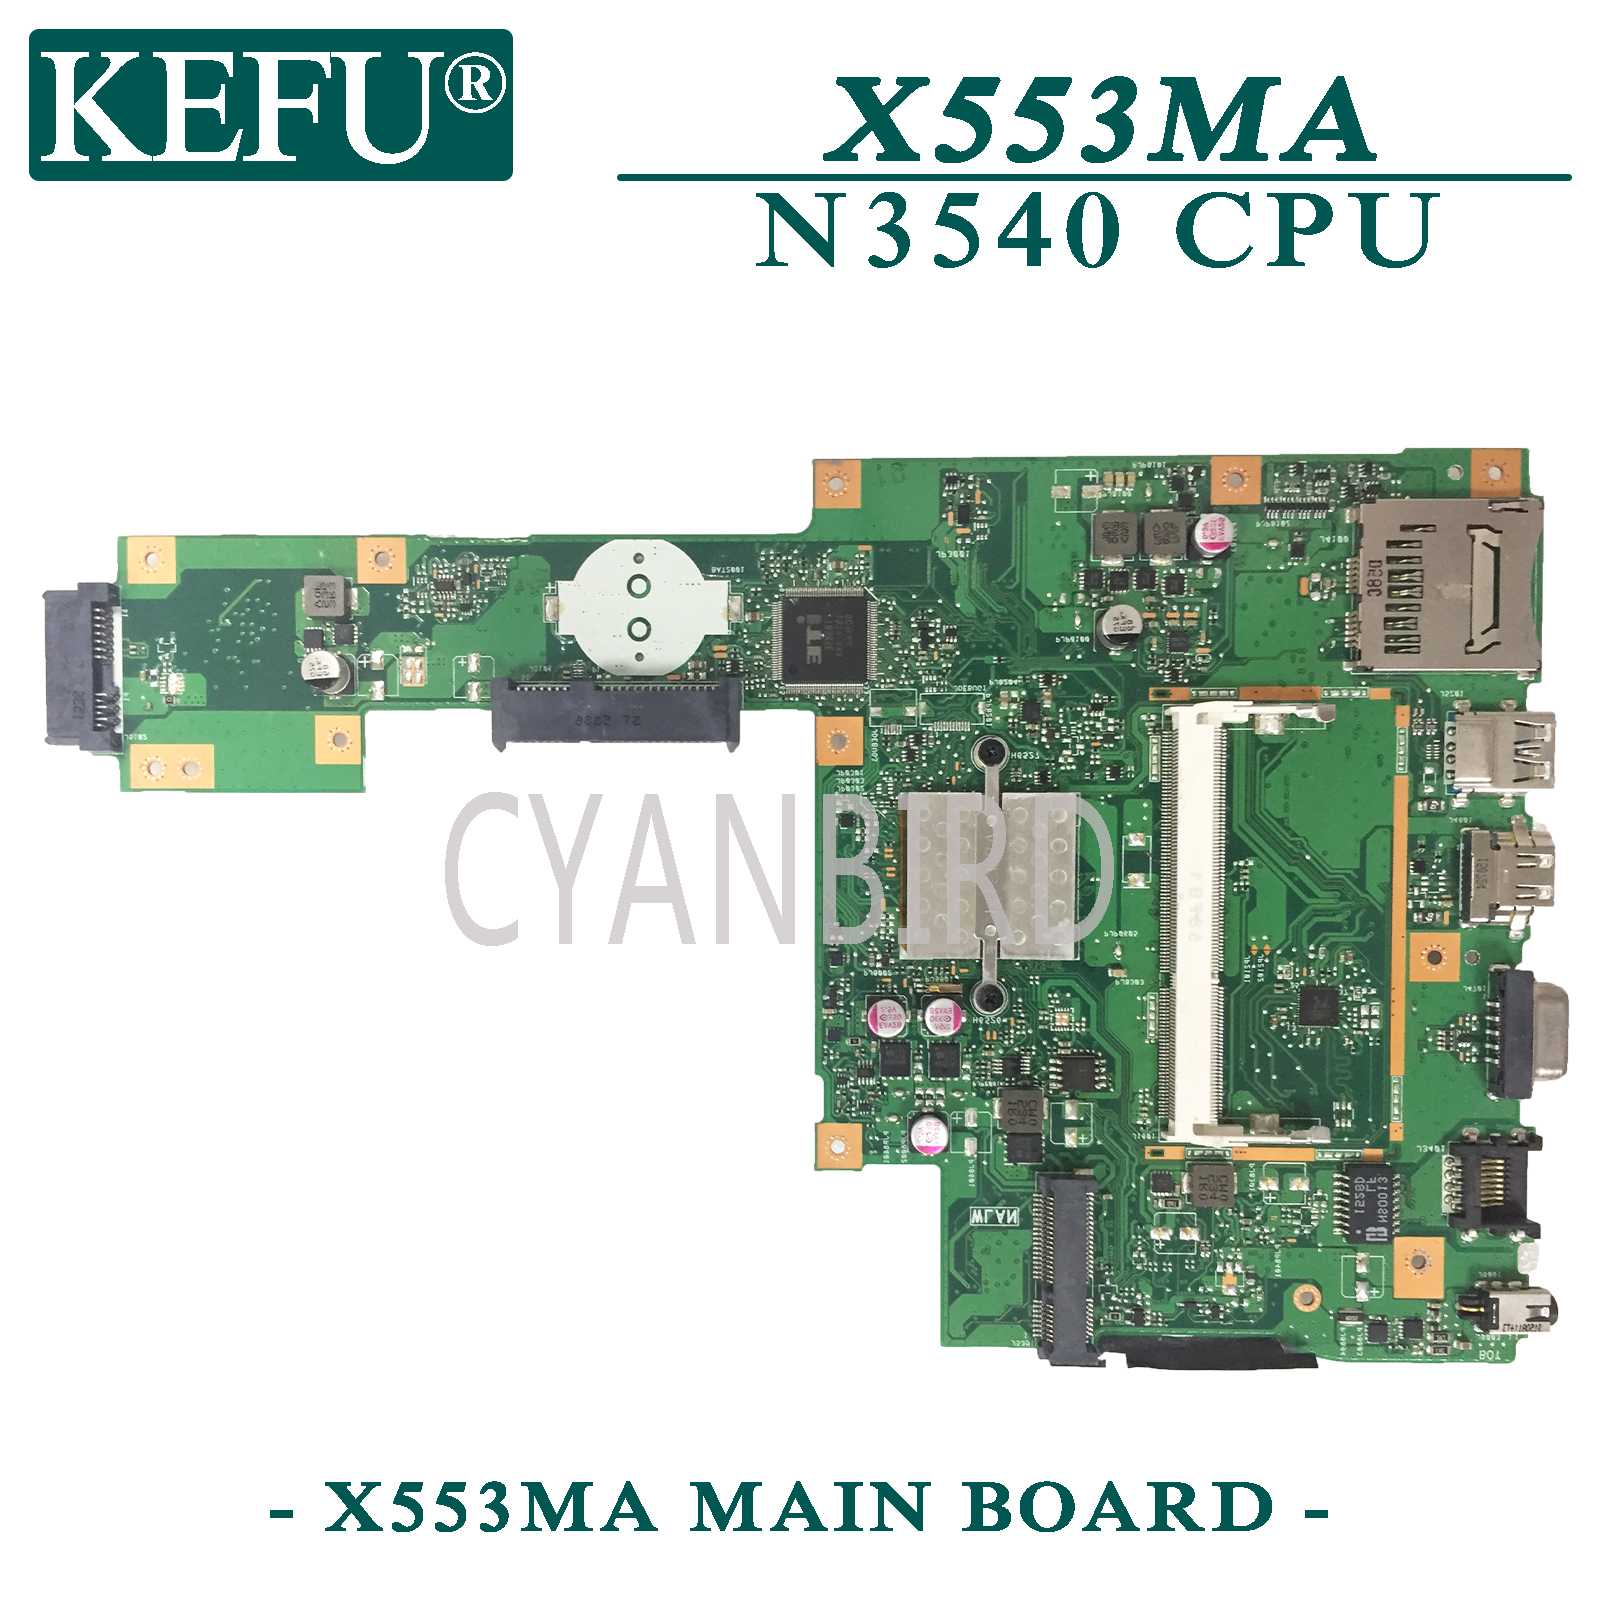 KEFU X553MA Original Mainboard For ASUS X553MA With N3540 CPU Laptop Motherboard